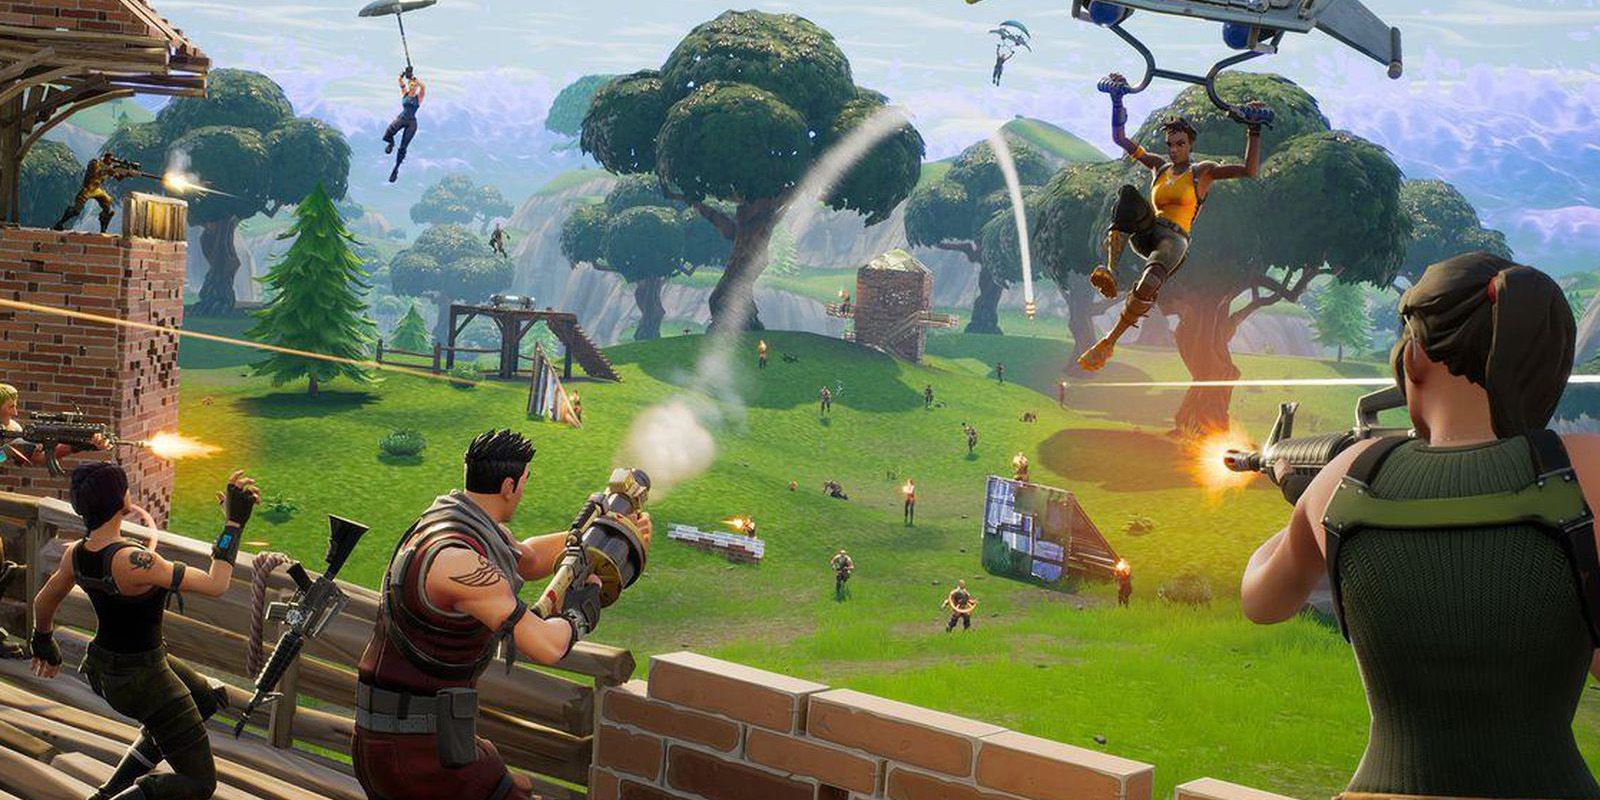 HOW TO PLAY FORTNITE ON INCOMPATIBLE ANDROID DEVICE